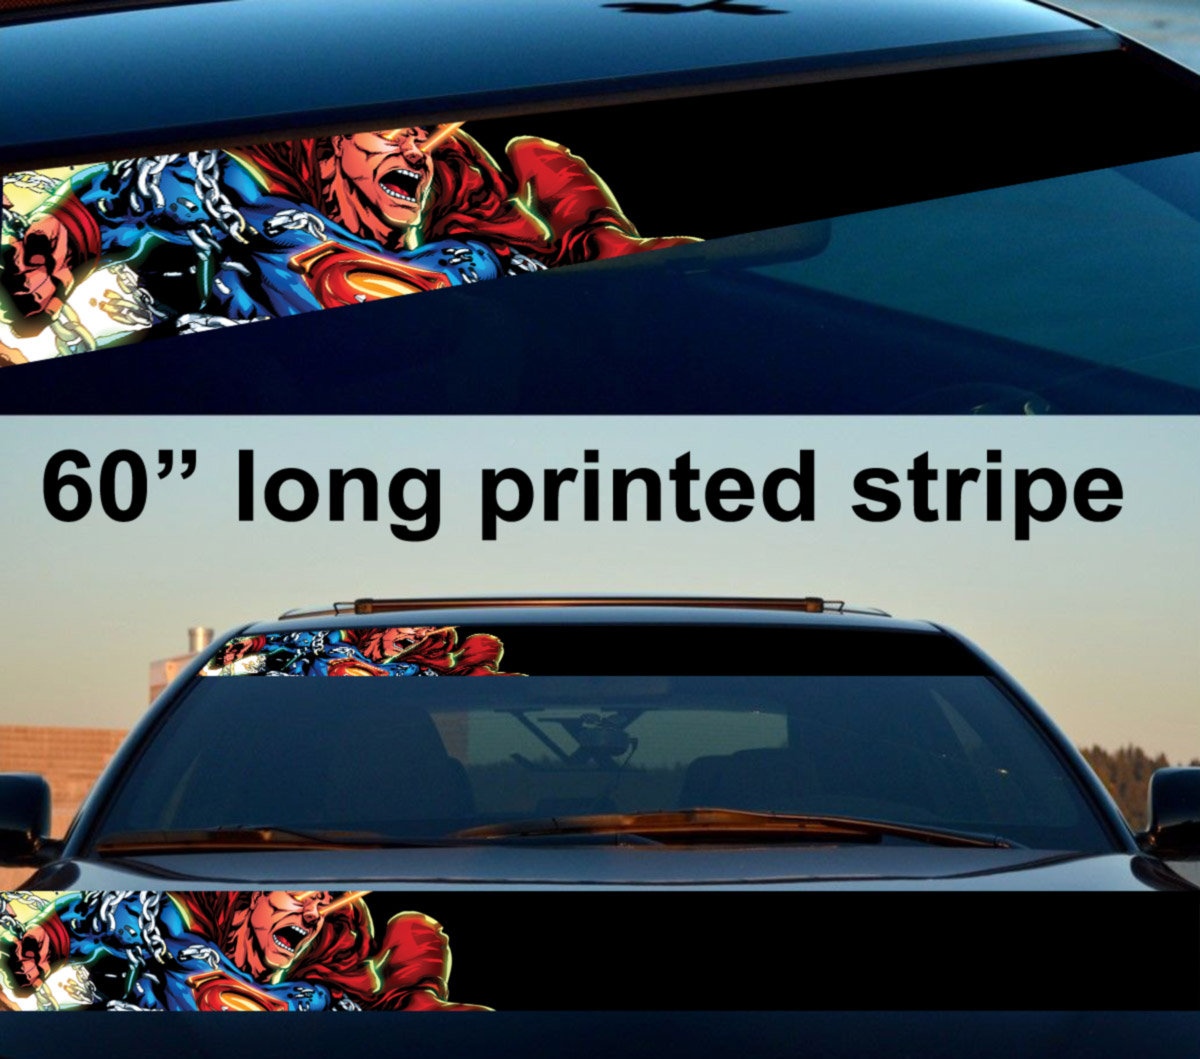 60 superman angry justice league kent dc sun strip printed windshield car vinyl sticker decal